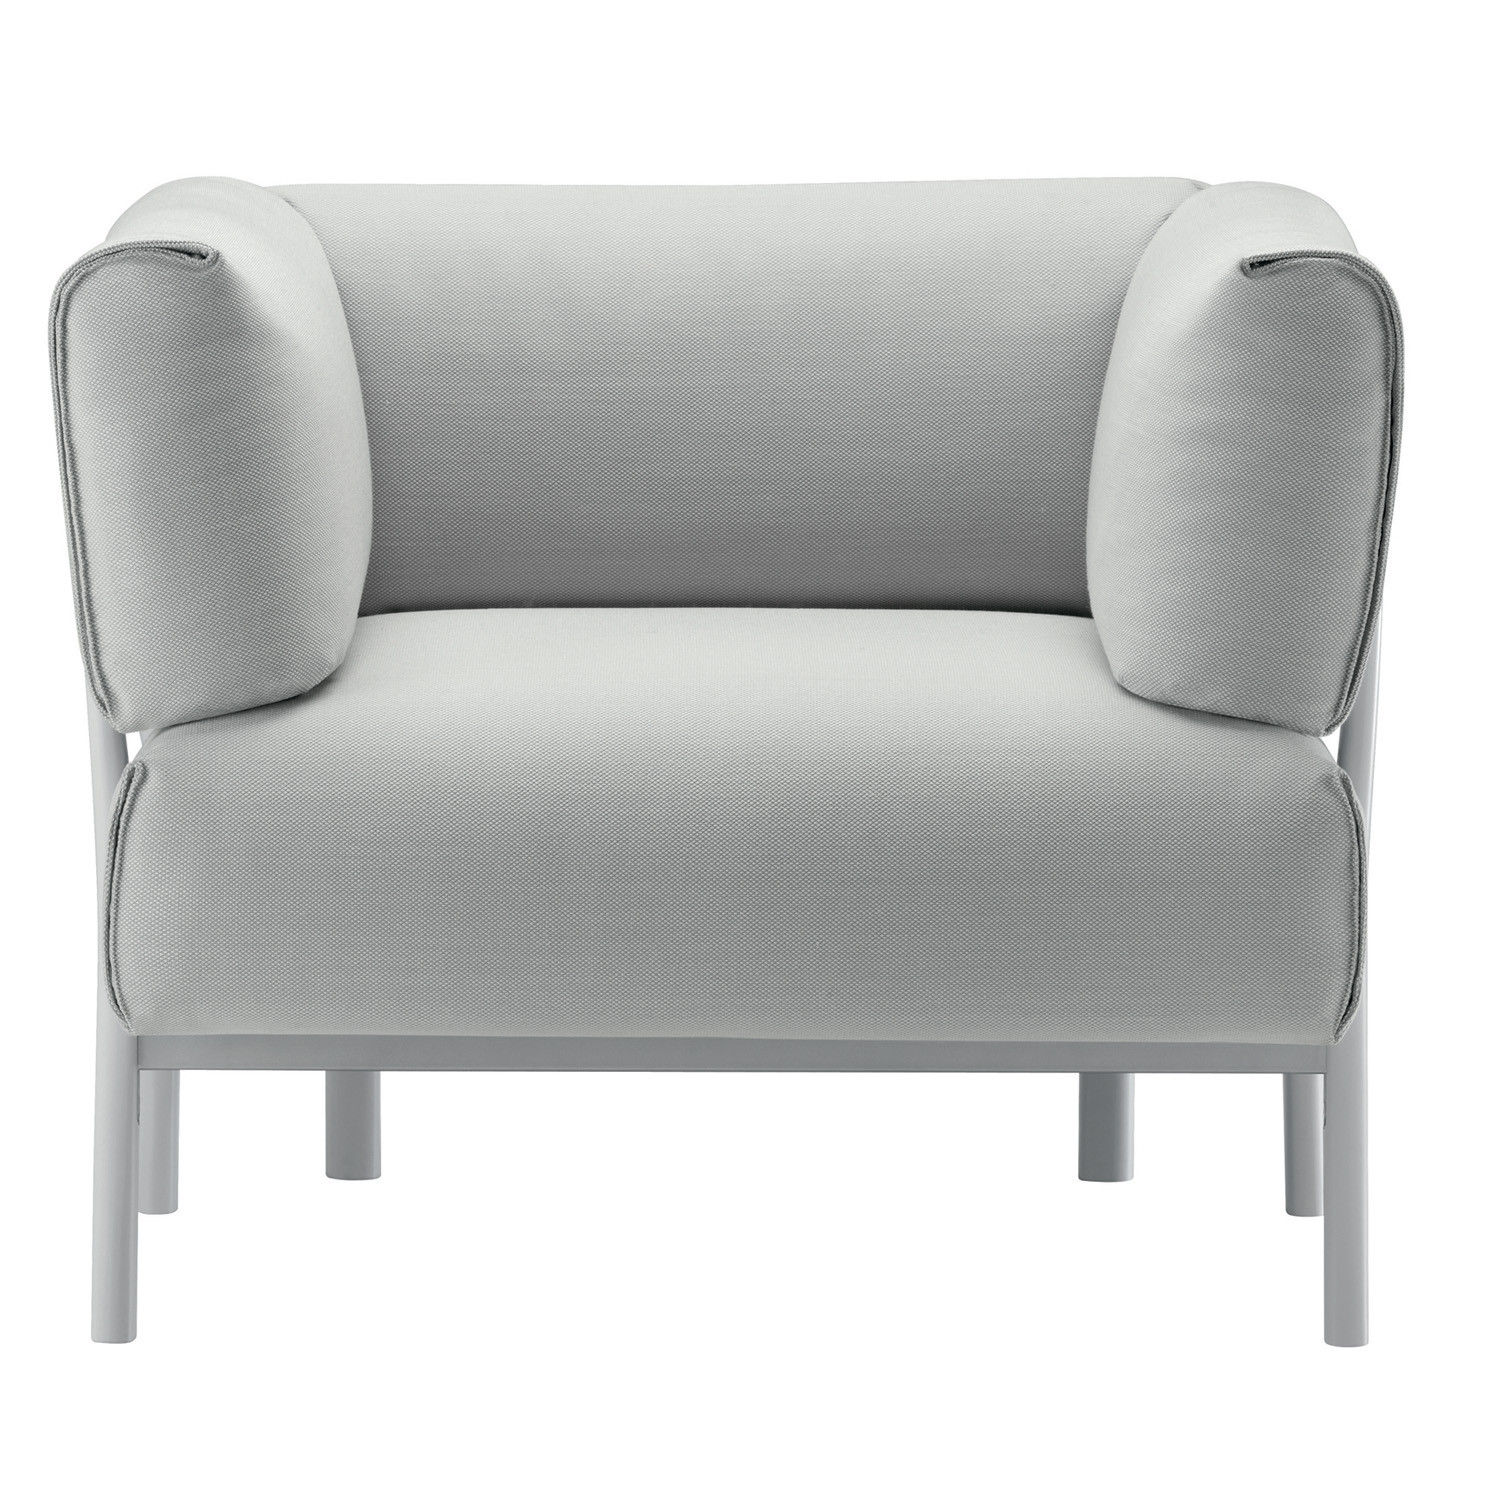 Eleven Armchair in fabric upholstery